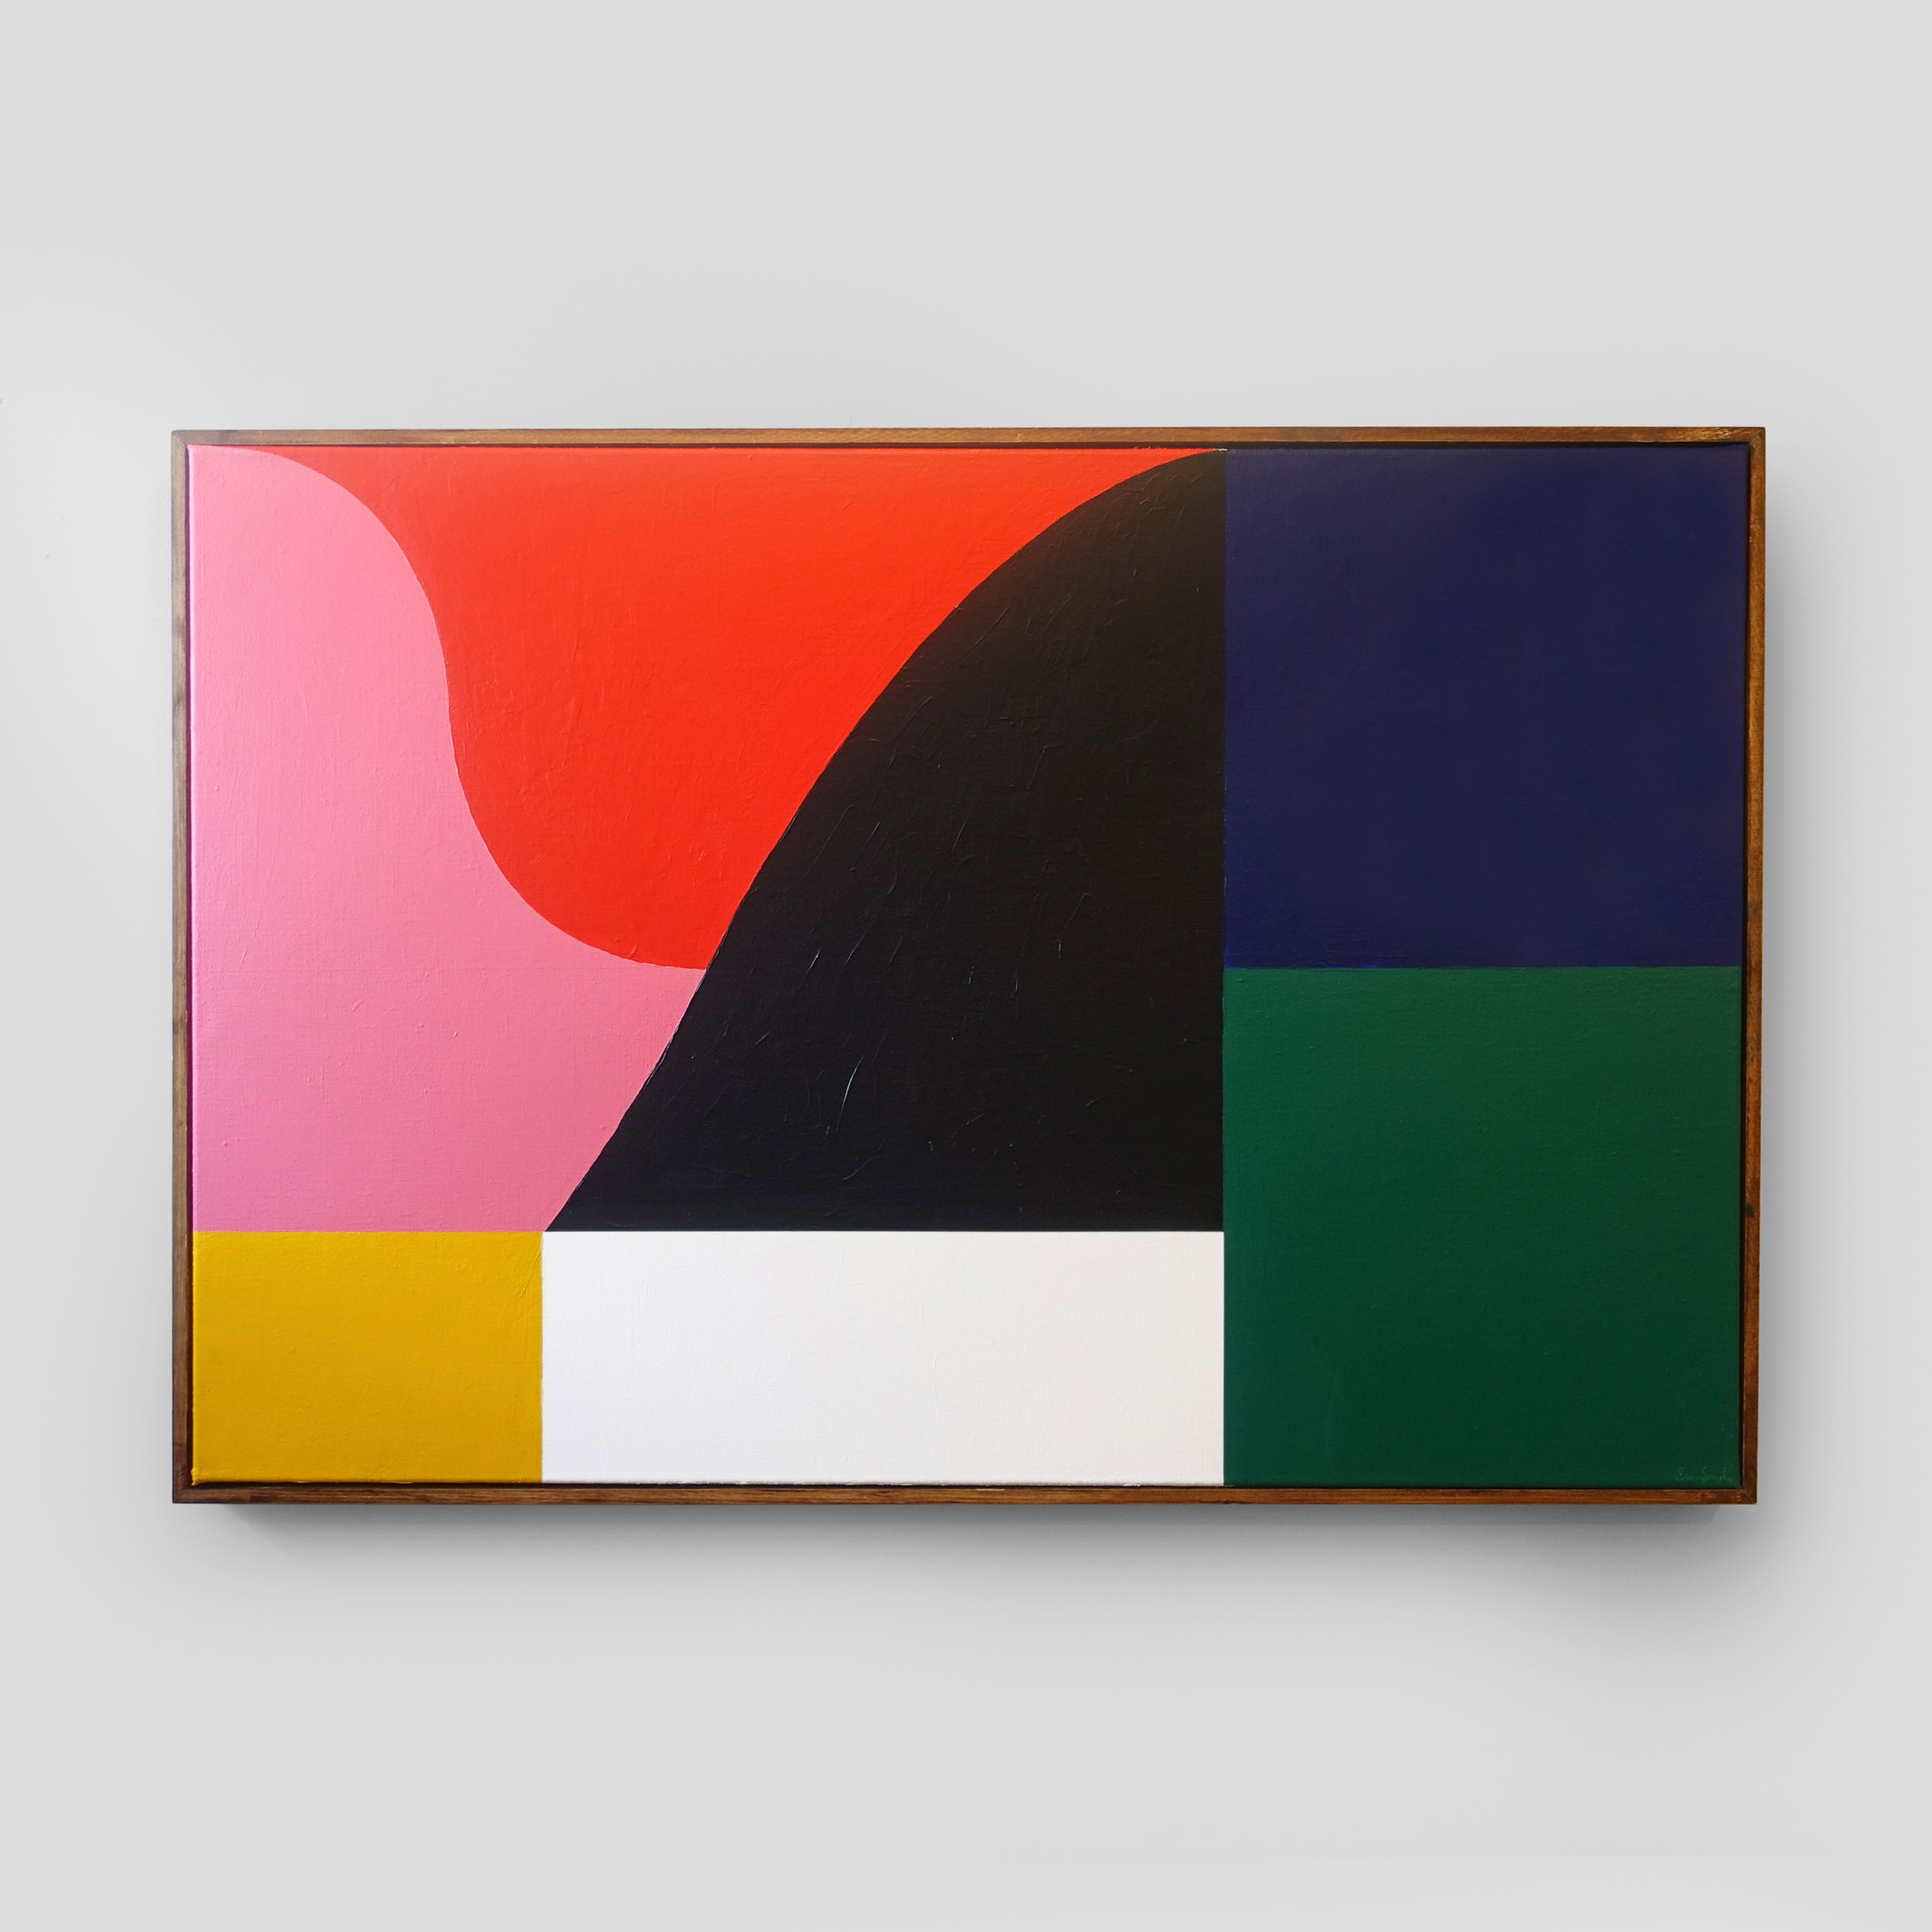 3 x 4 Composition No. 4   120 x 80 cm | acrylic on linen, pine frame | 2018